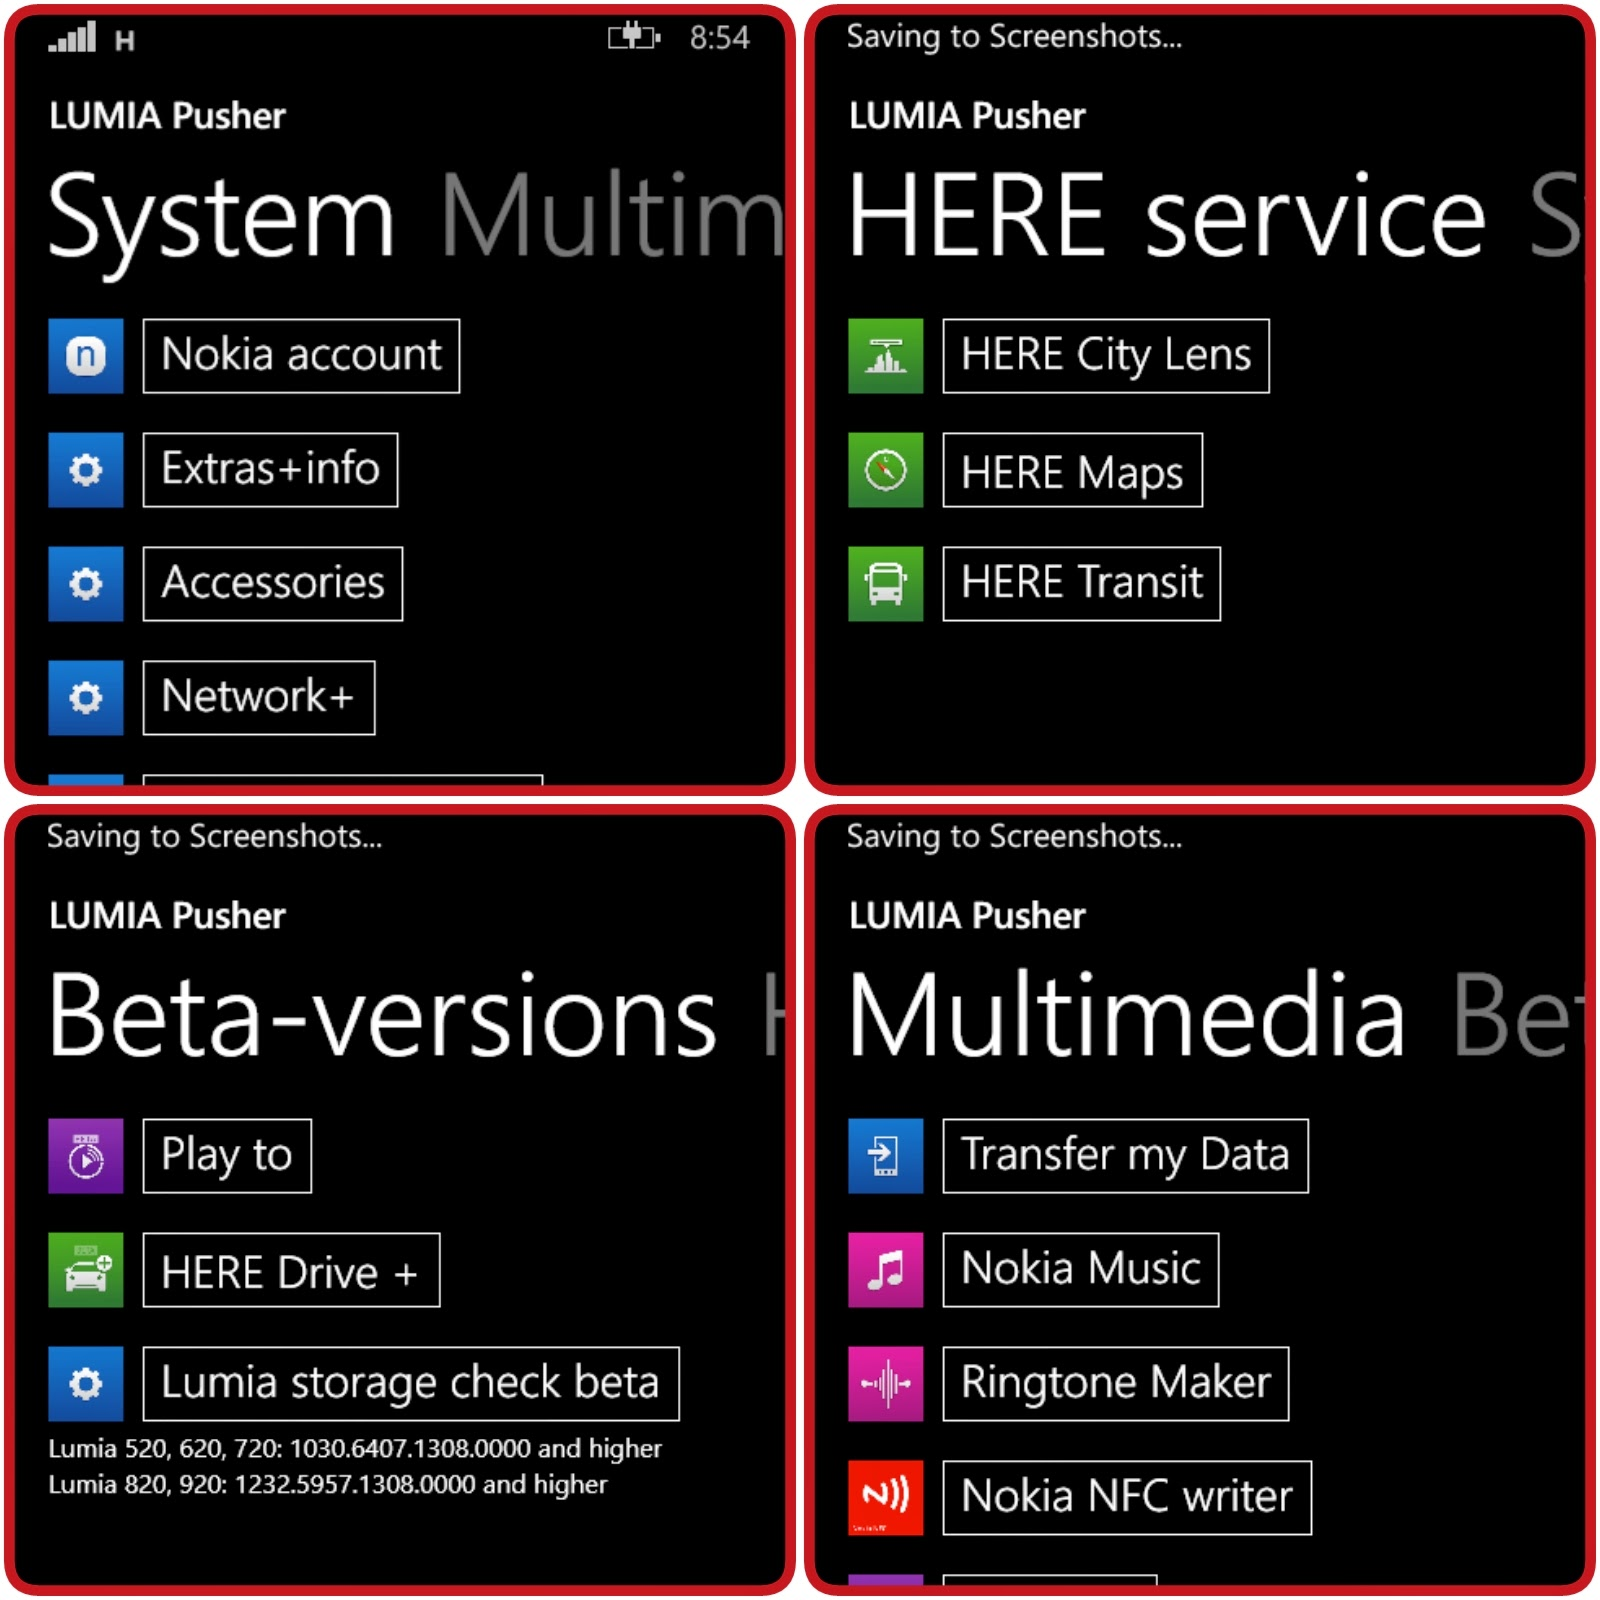 Lumia pusher system, Setting, tools, upgrade, windows, mobile phone, mobile phone inside, windows inside, directly, setting windows phone, windows mobile phones, tools windows, tools mobile phone, upgrade mobile phone, setting and upgrade, upgrade inside, upgrade directly